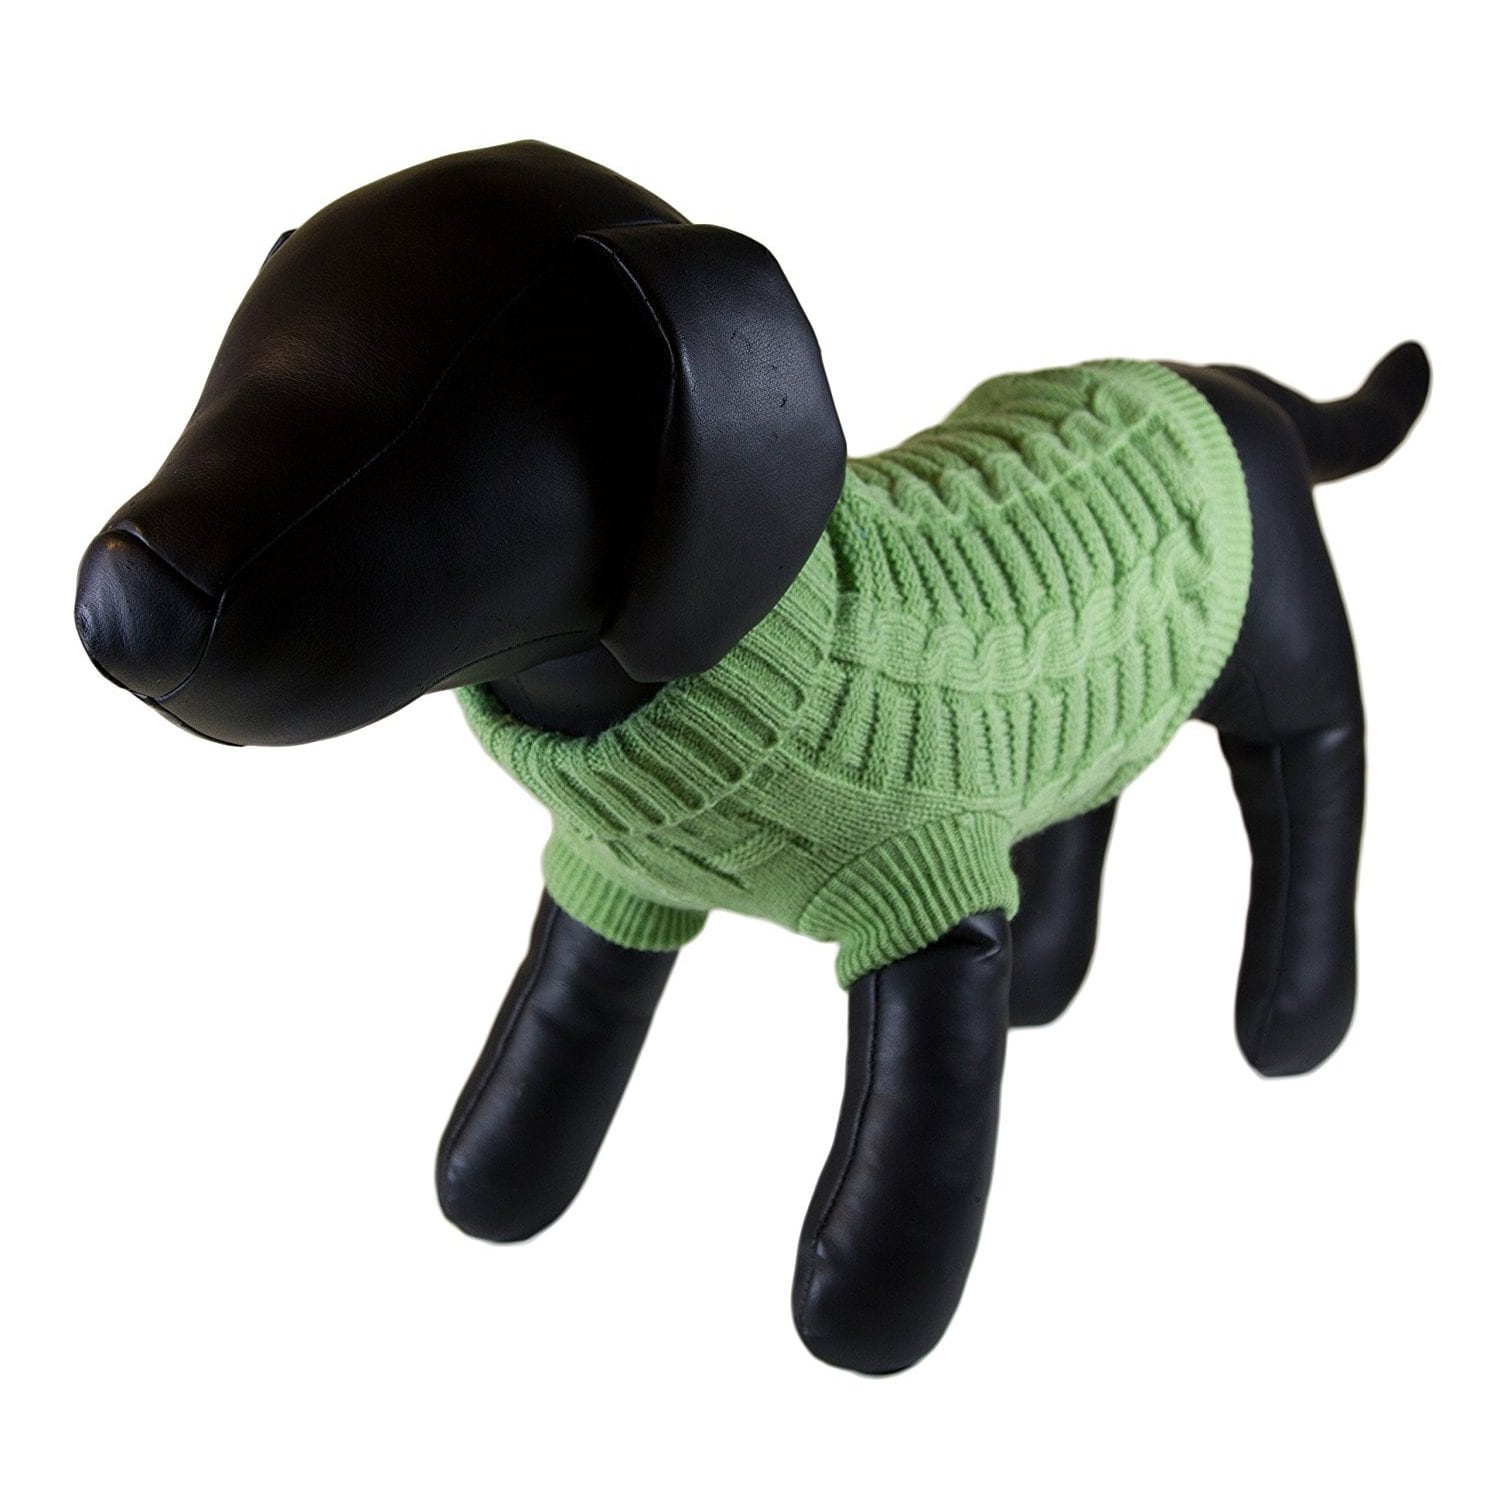 Petcessory Green Dog Turtleneck Sweater (Small), Size S